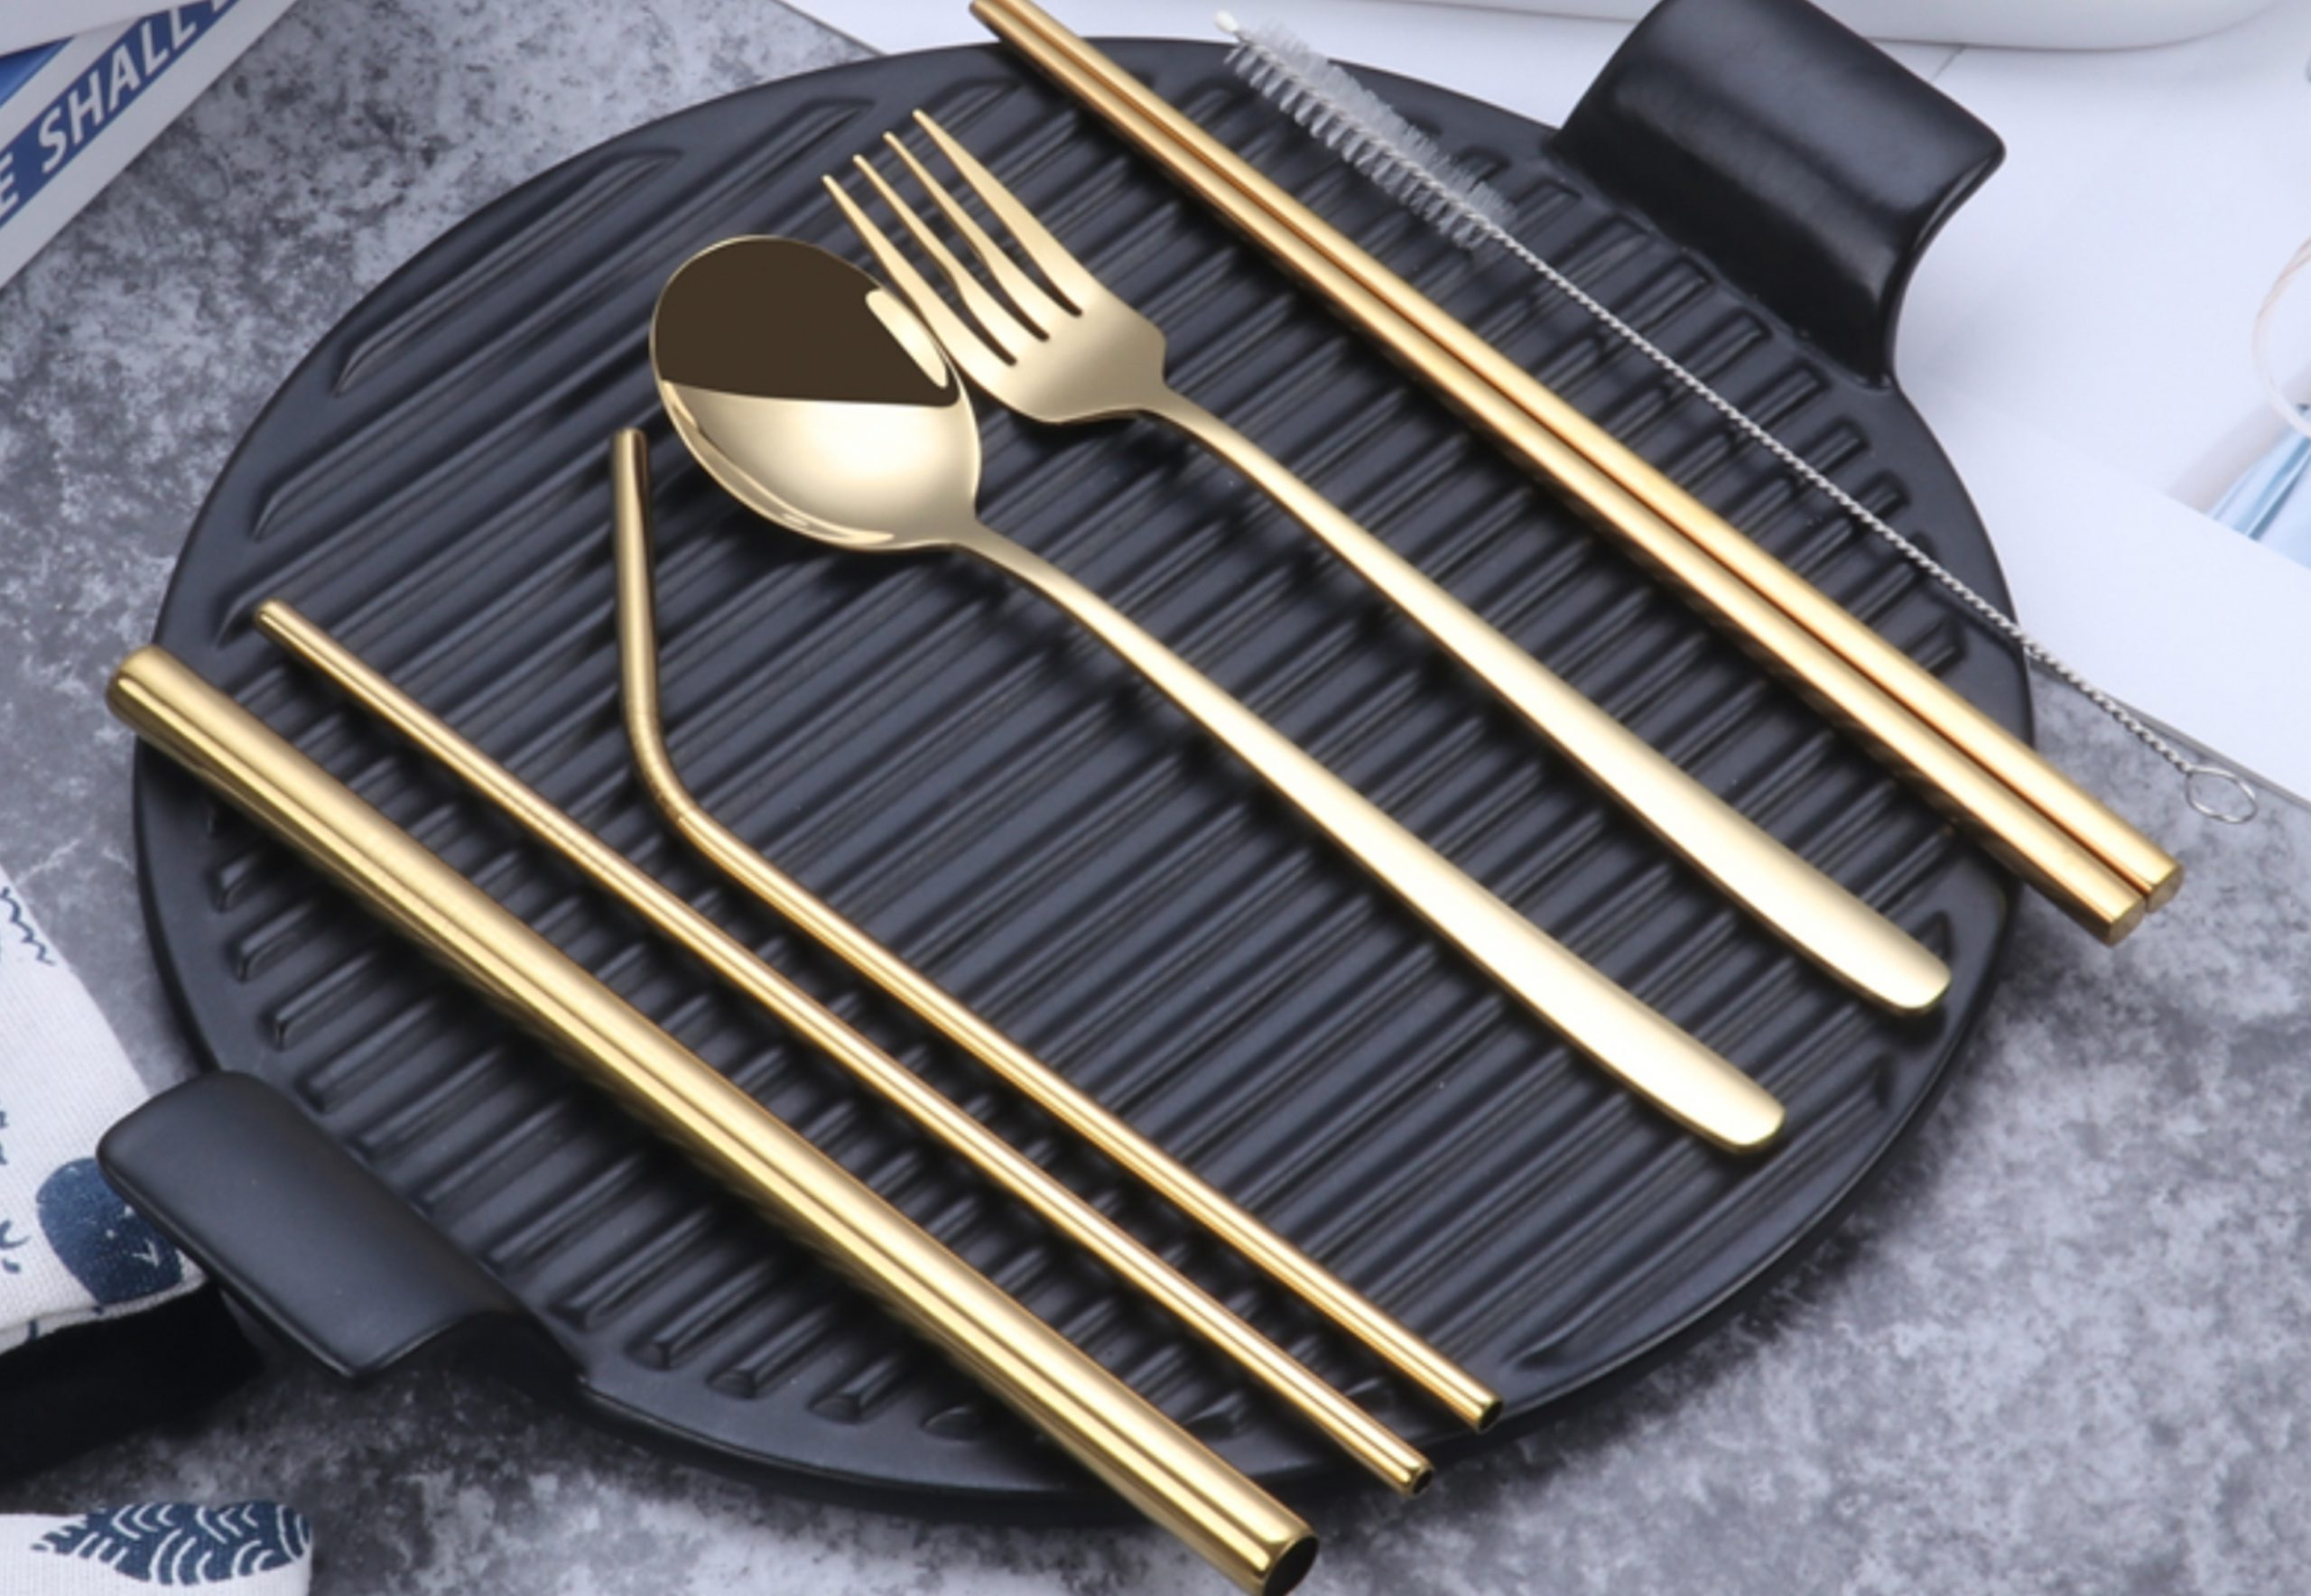 custom stainless steel cutlery set